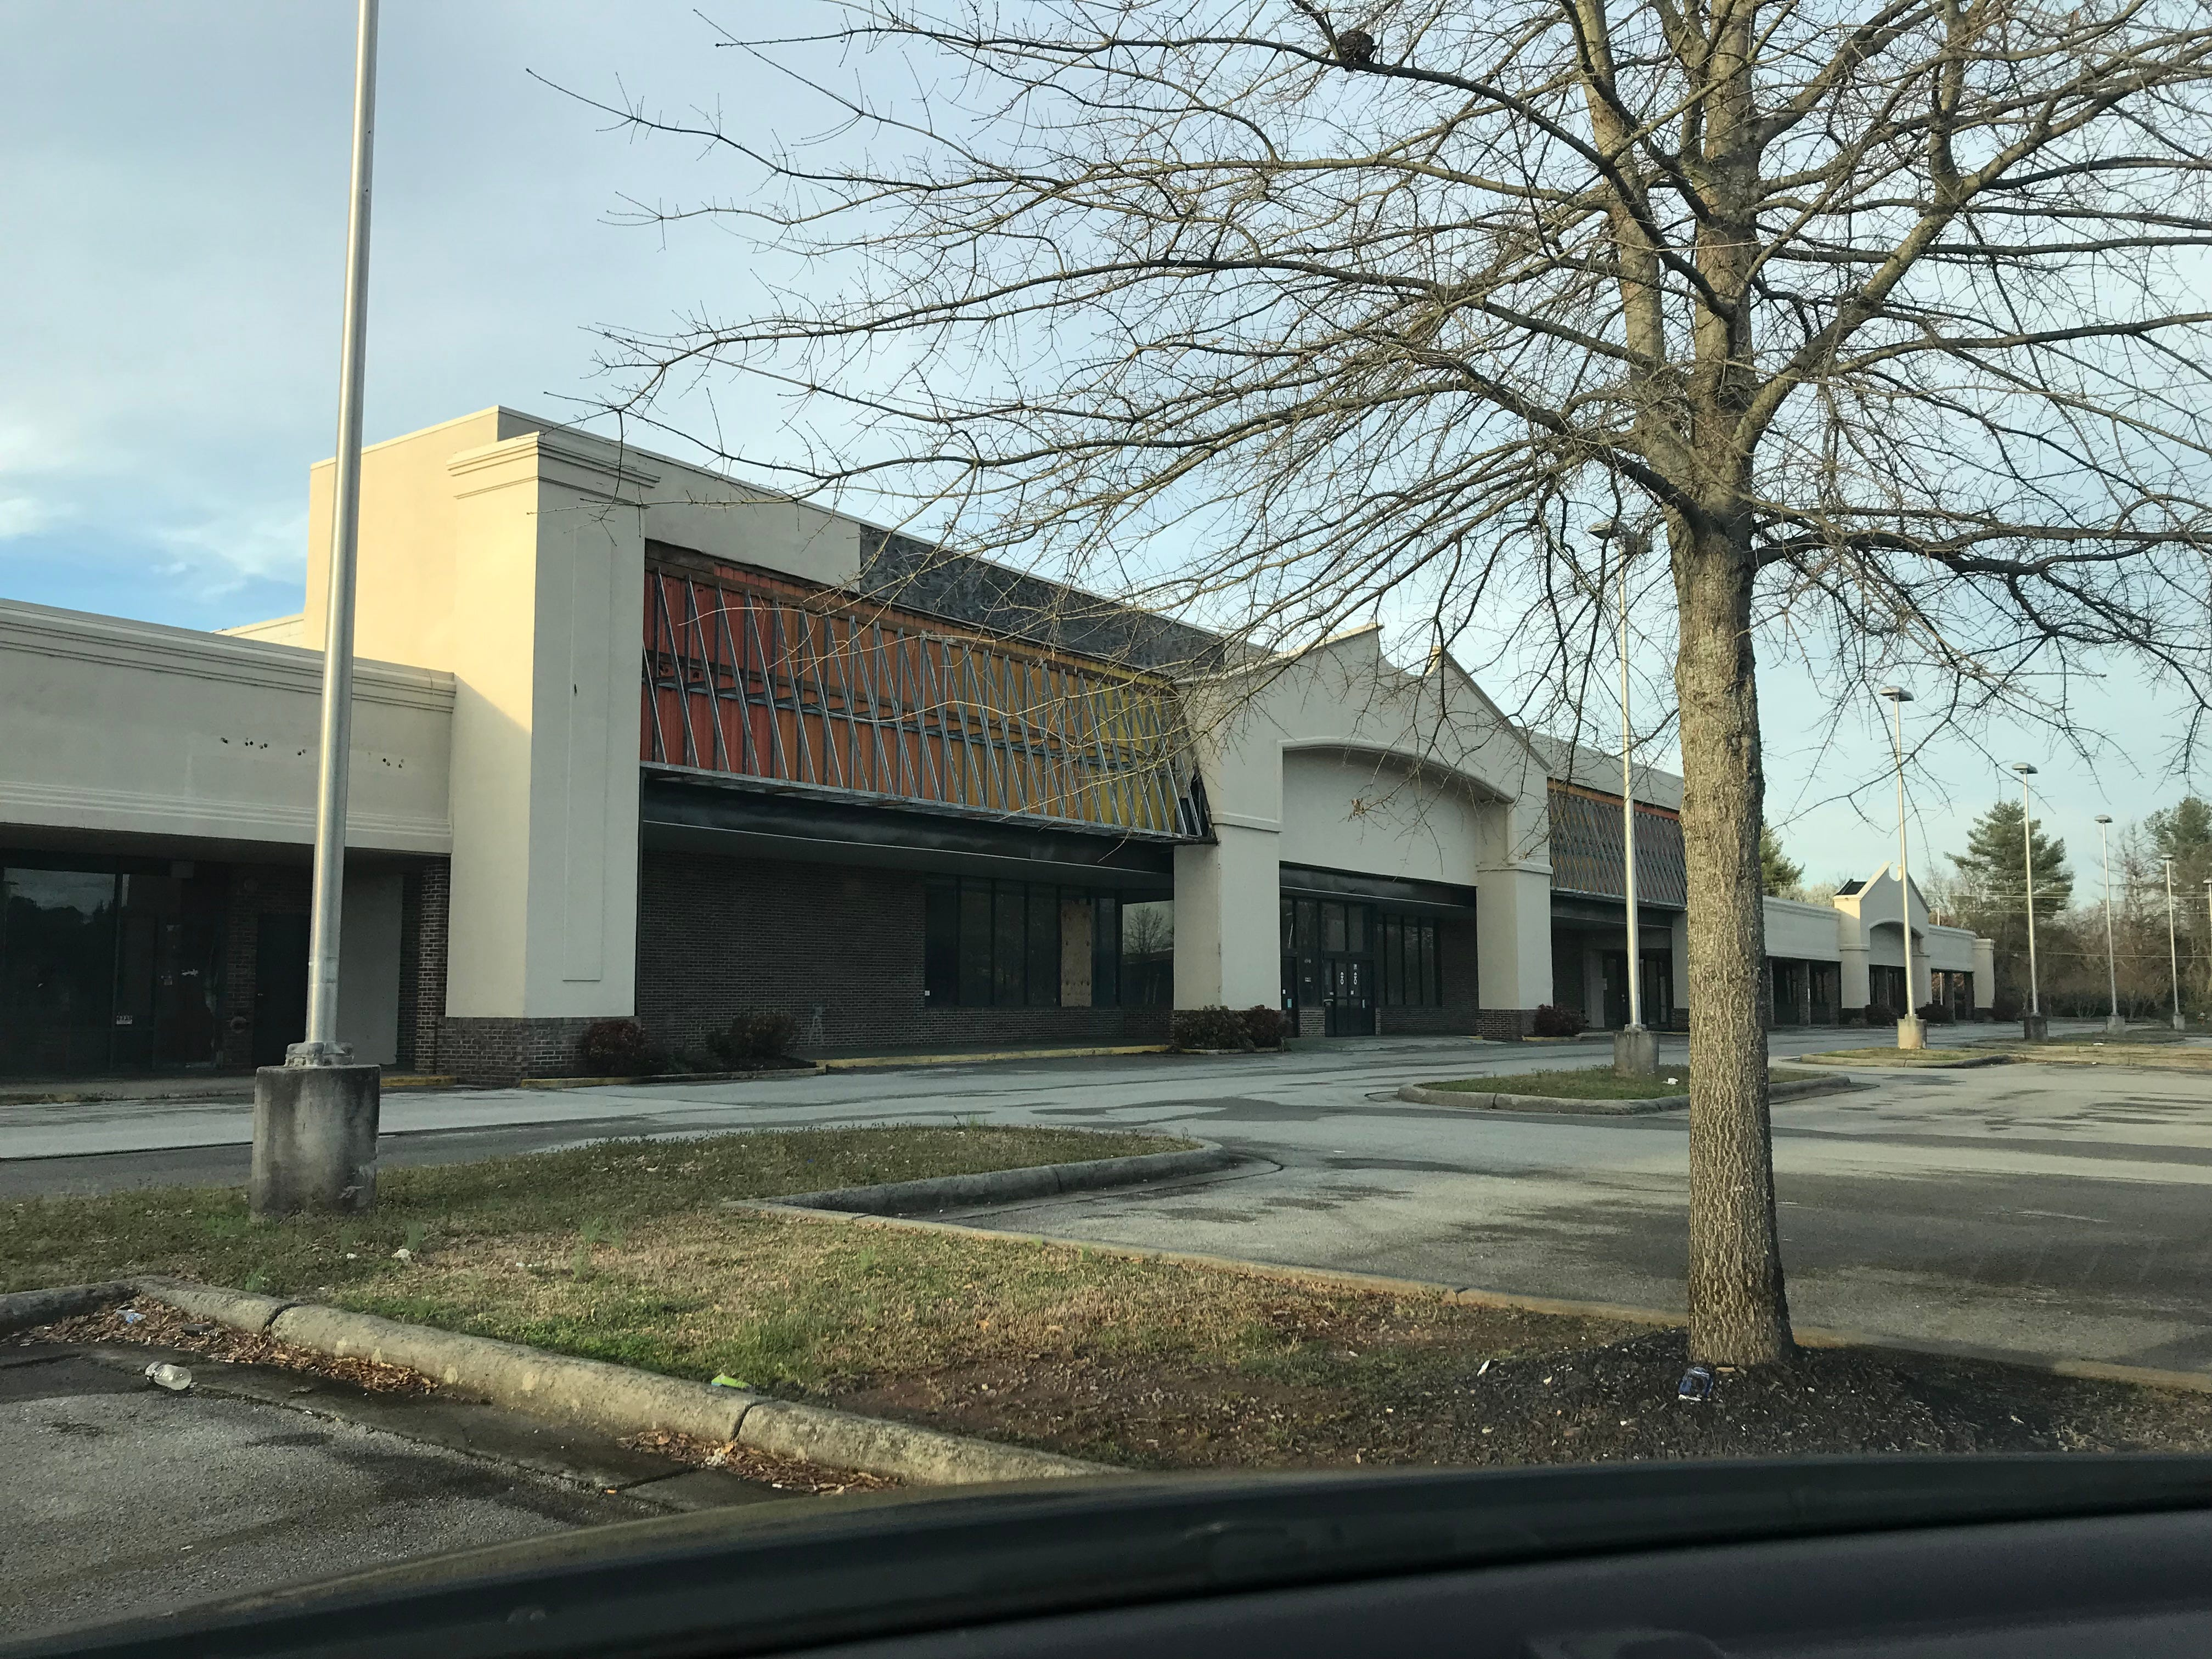 Plans for the former Ingle's on Kingston Pike include having the interior gutted and built out to suit new tenants.